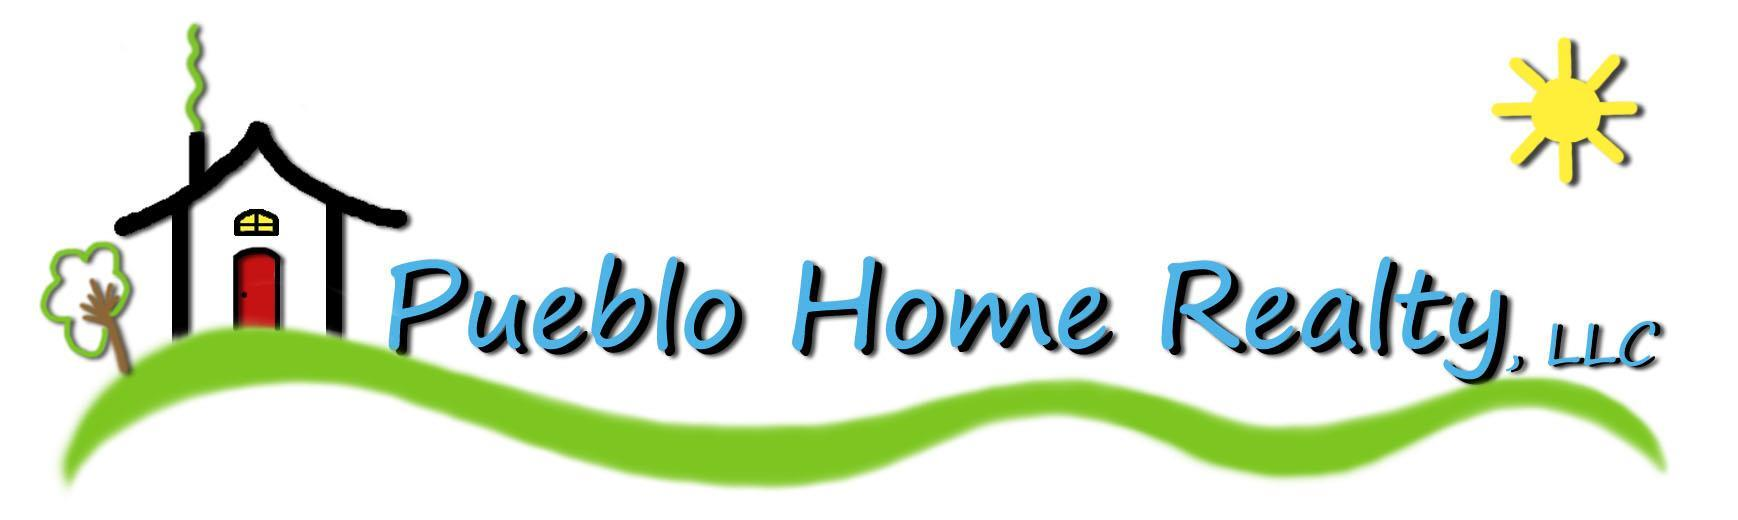 Pueblo Home Realty LLC